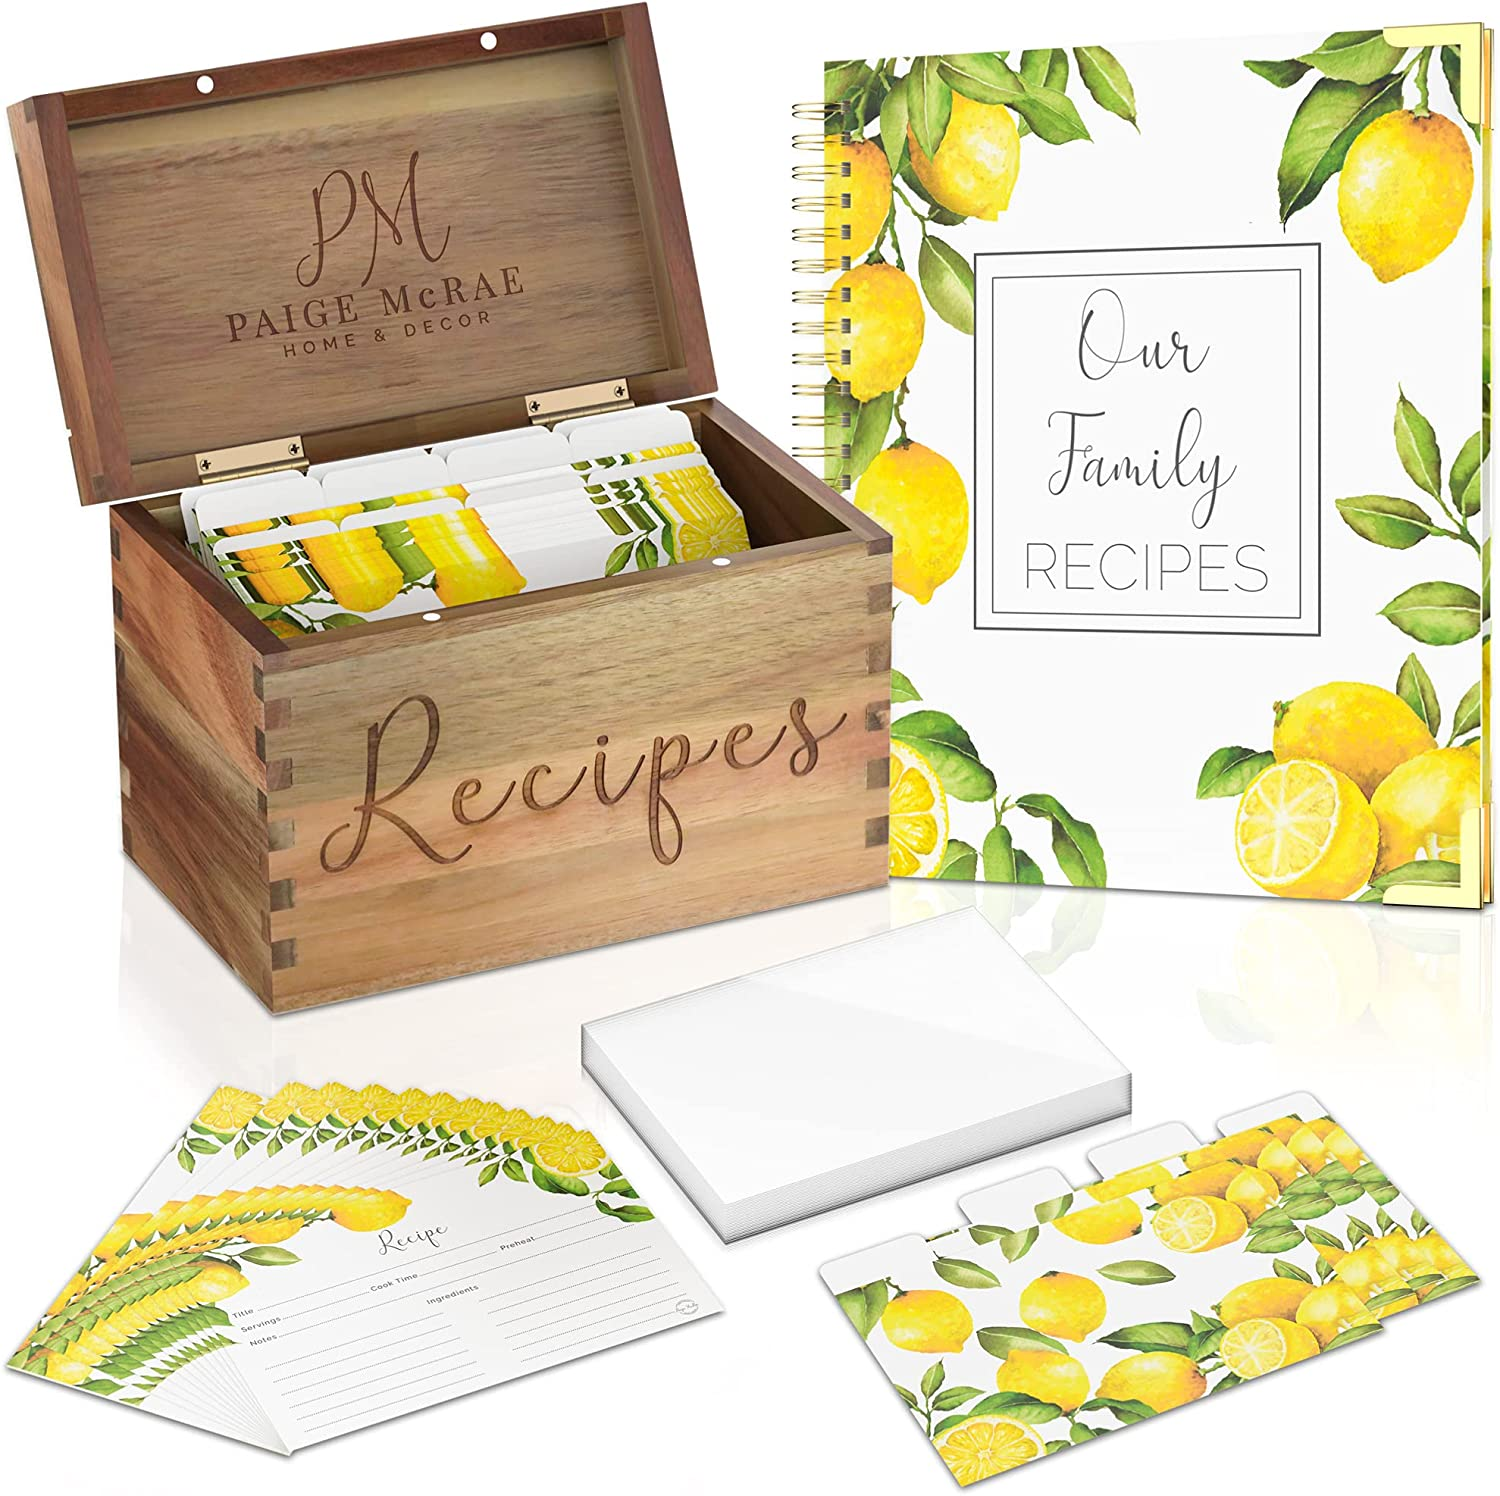 Wooden Recipe Box With Cards And Dividers, Protectors & 100 Page Blank Recipe Book To Write In-Recipe Card Box Organizer, Recipe Card Holder, 4x6 Recipe Cards And Box Set For Woman,Bridal Shower & Mom